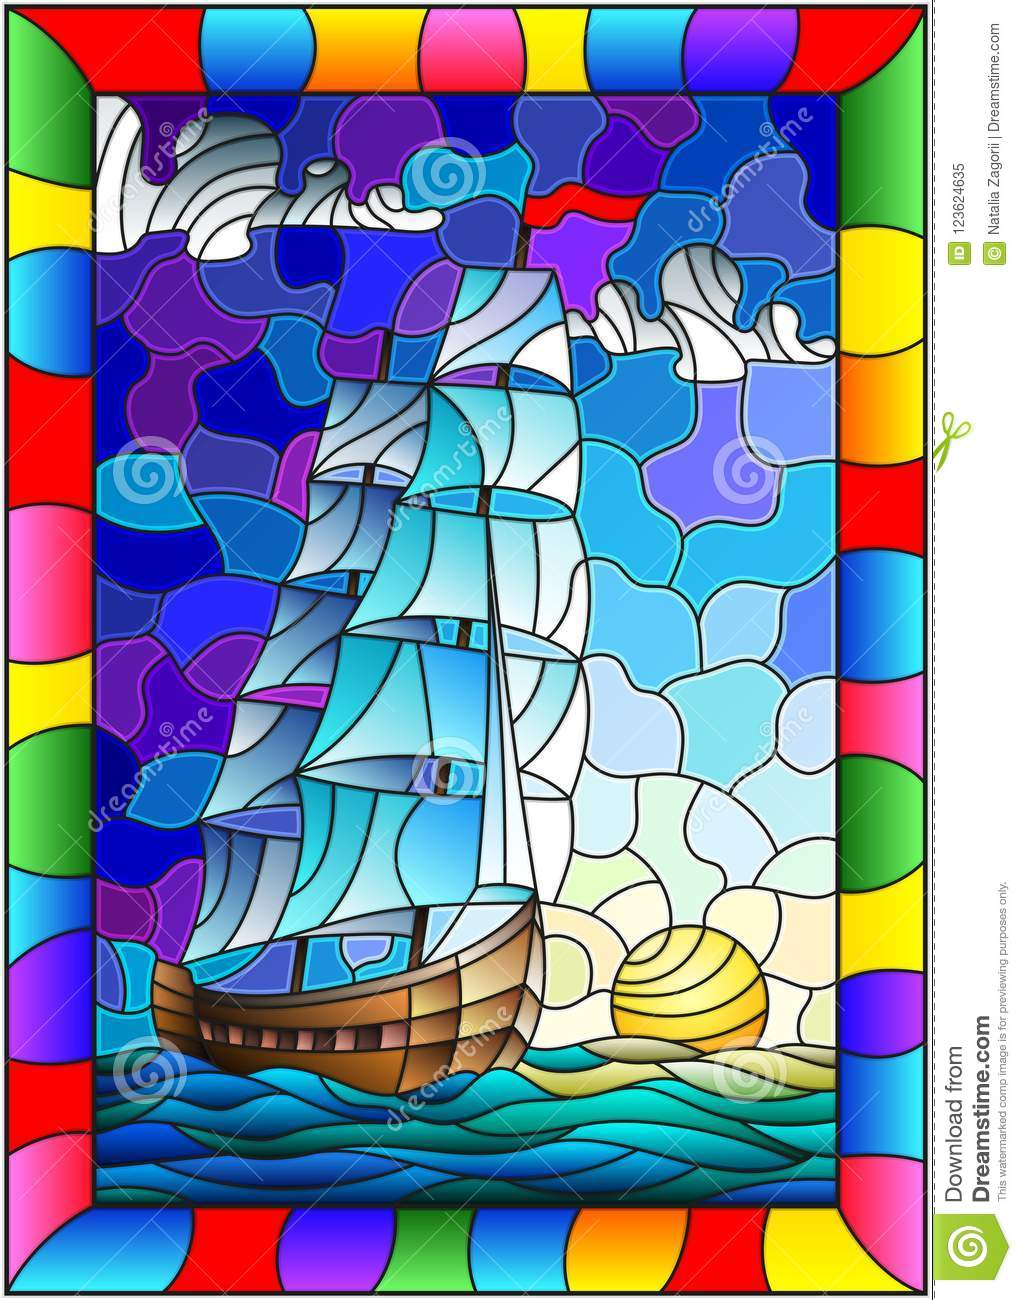 Stained Glass Illustration With An Old Ship Sailing With White Sails